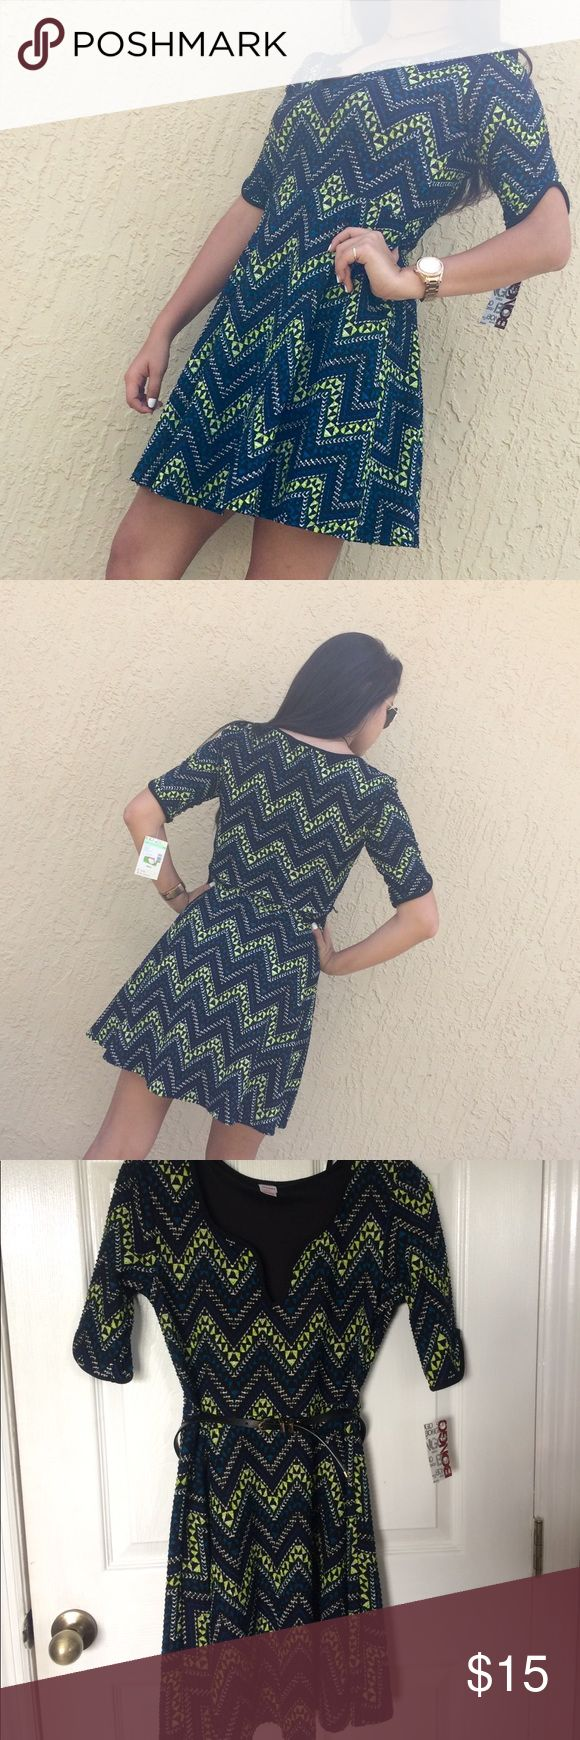 Bongo Aztec print dress Perfect for date night or just a girls night out super flirty and cute! BONGO Dresses